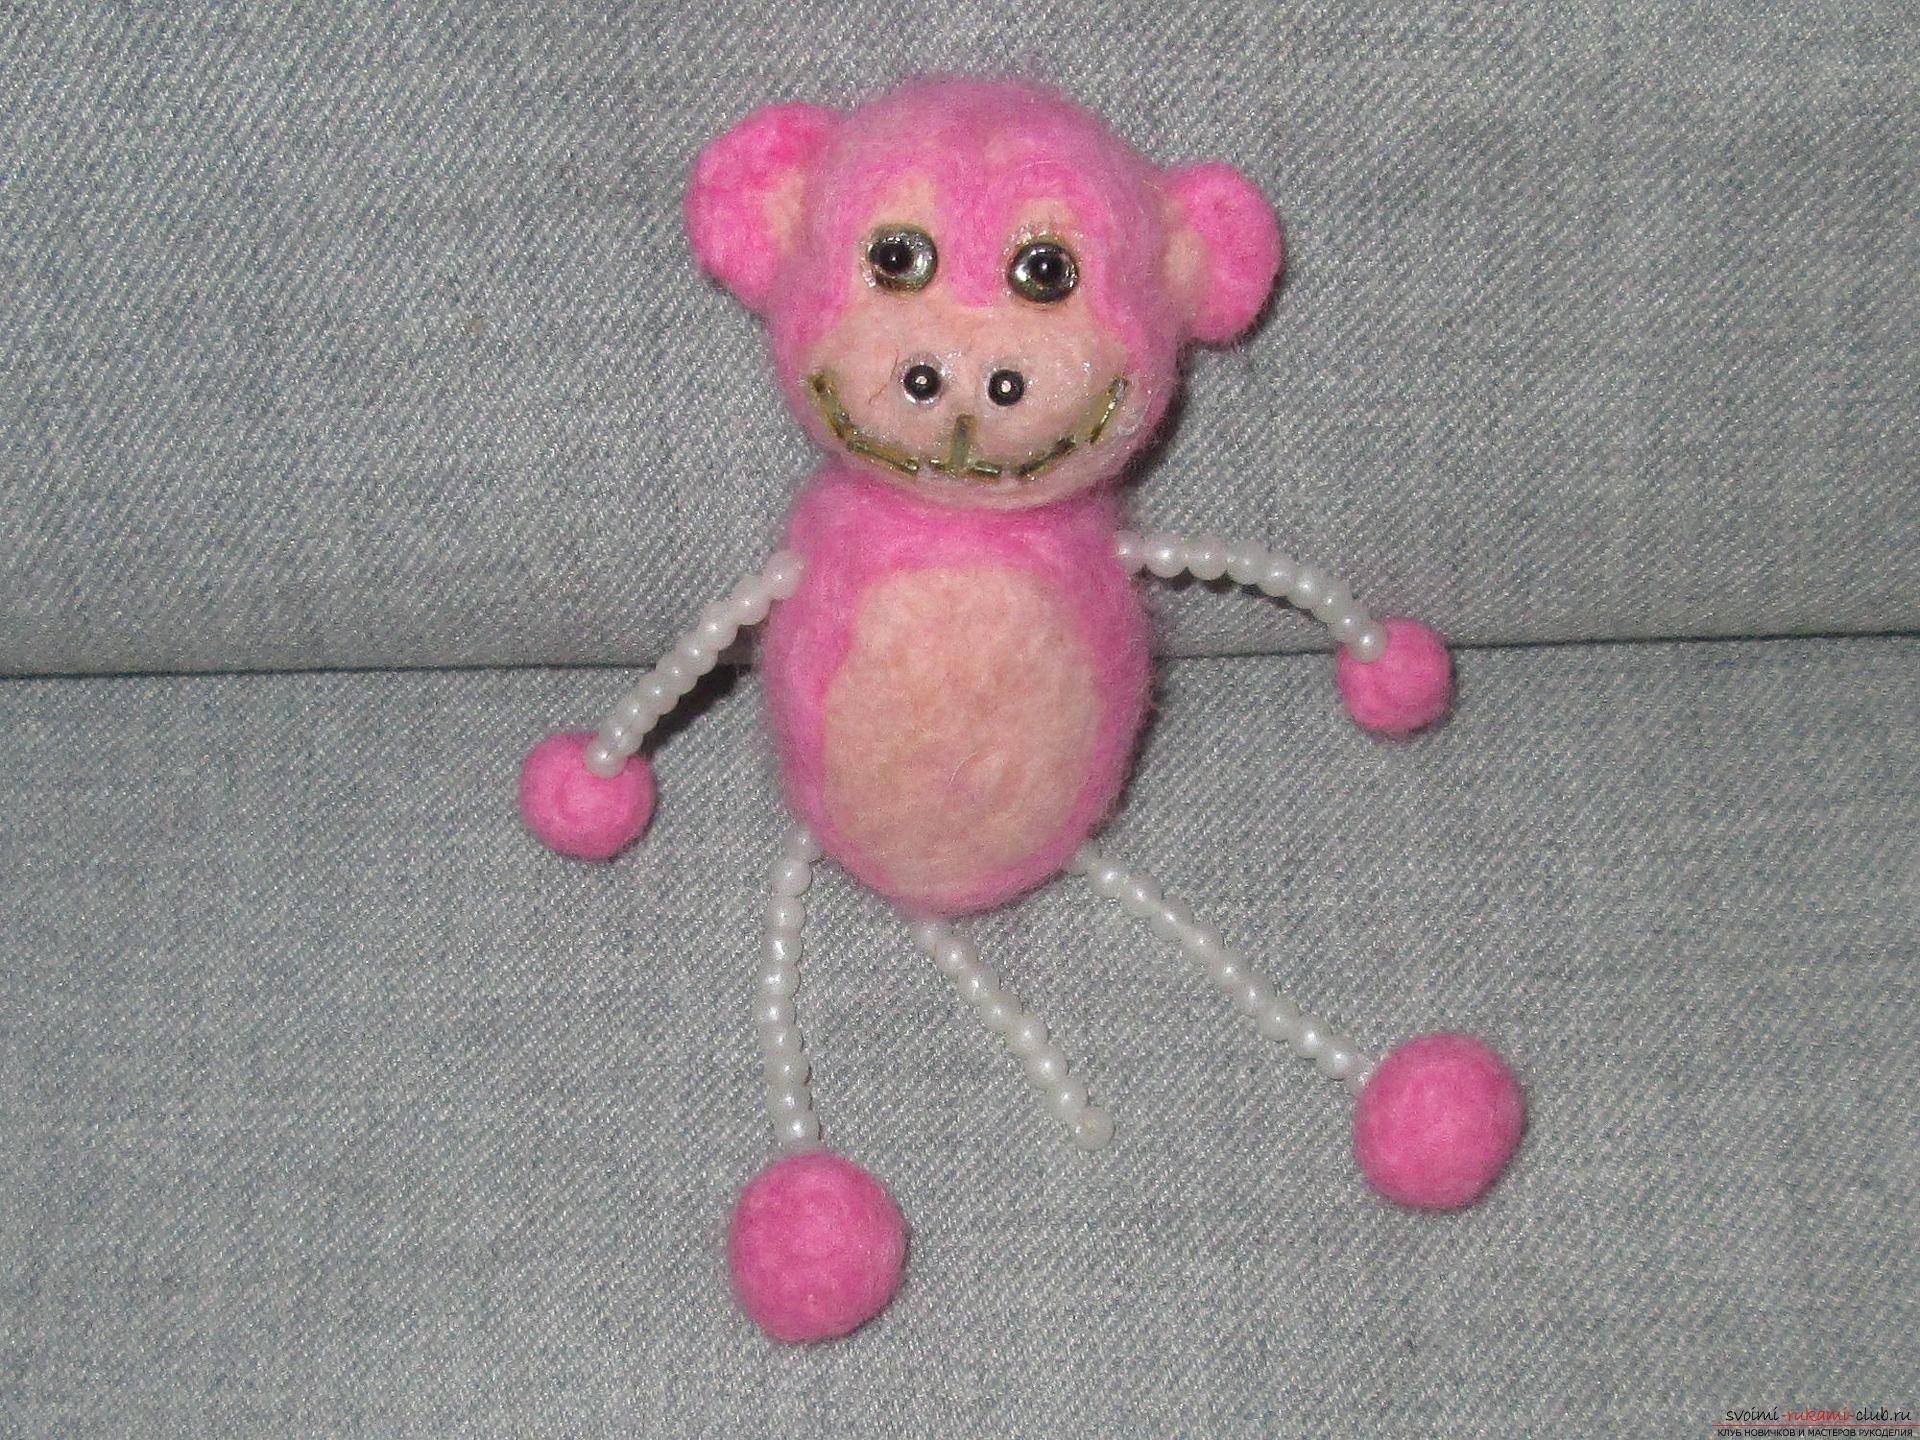 This master class felting out of wool will help make a toy monkey with your own hands. Photo №25